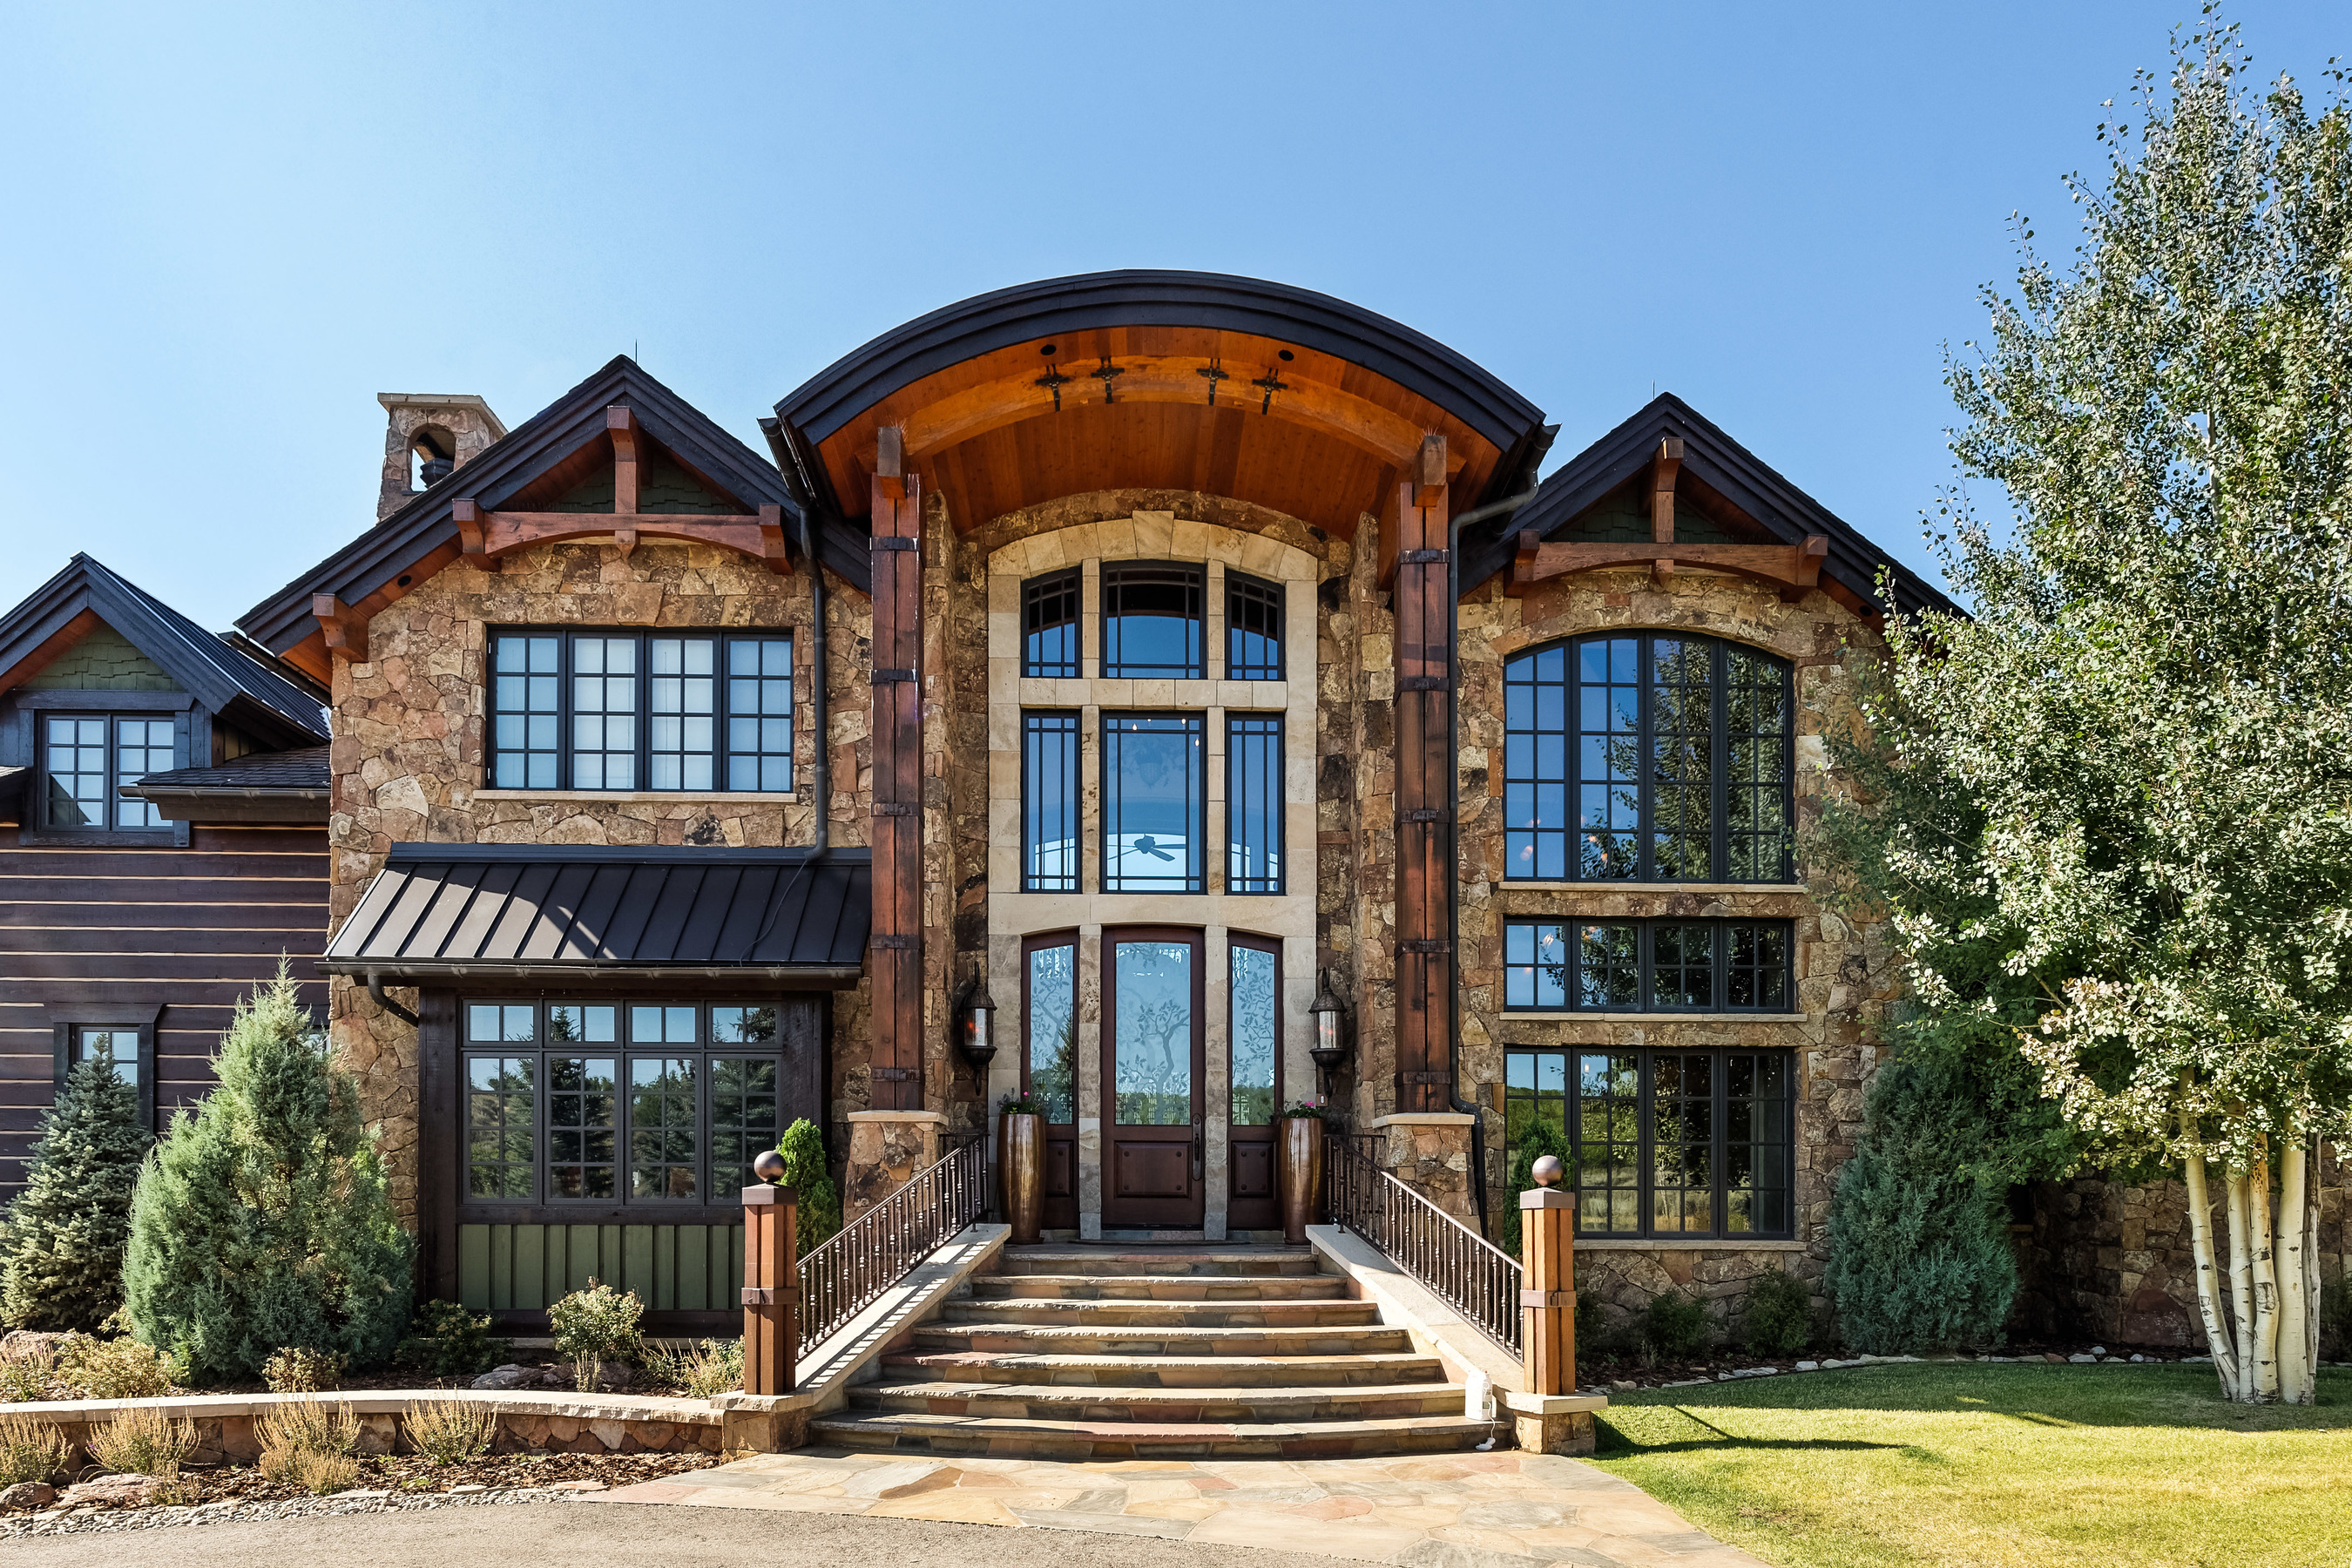 Casa unifamiliar en venta en/de 000153 Park Meadows Lane, Carbondale, Colorado ,81623  , EUA